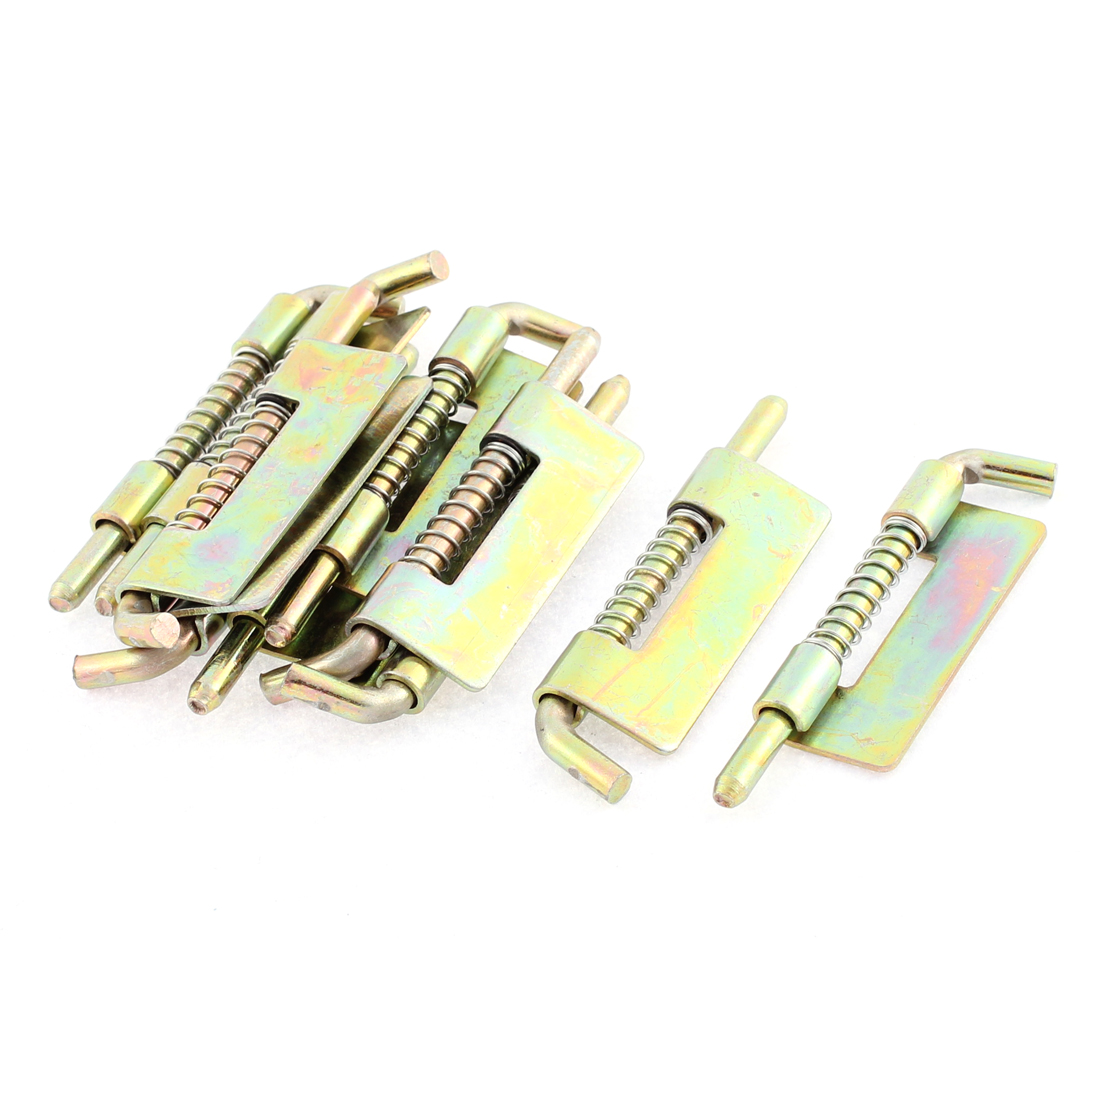 10 Pcs 75mm Long Fixed Type Locked Spring Loaded Barrel Bolt Latch